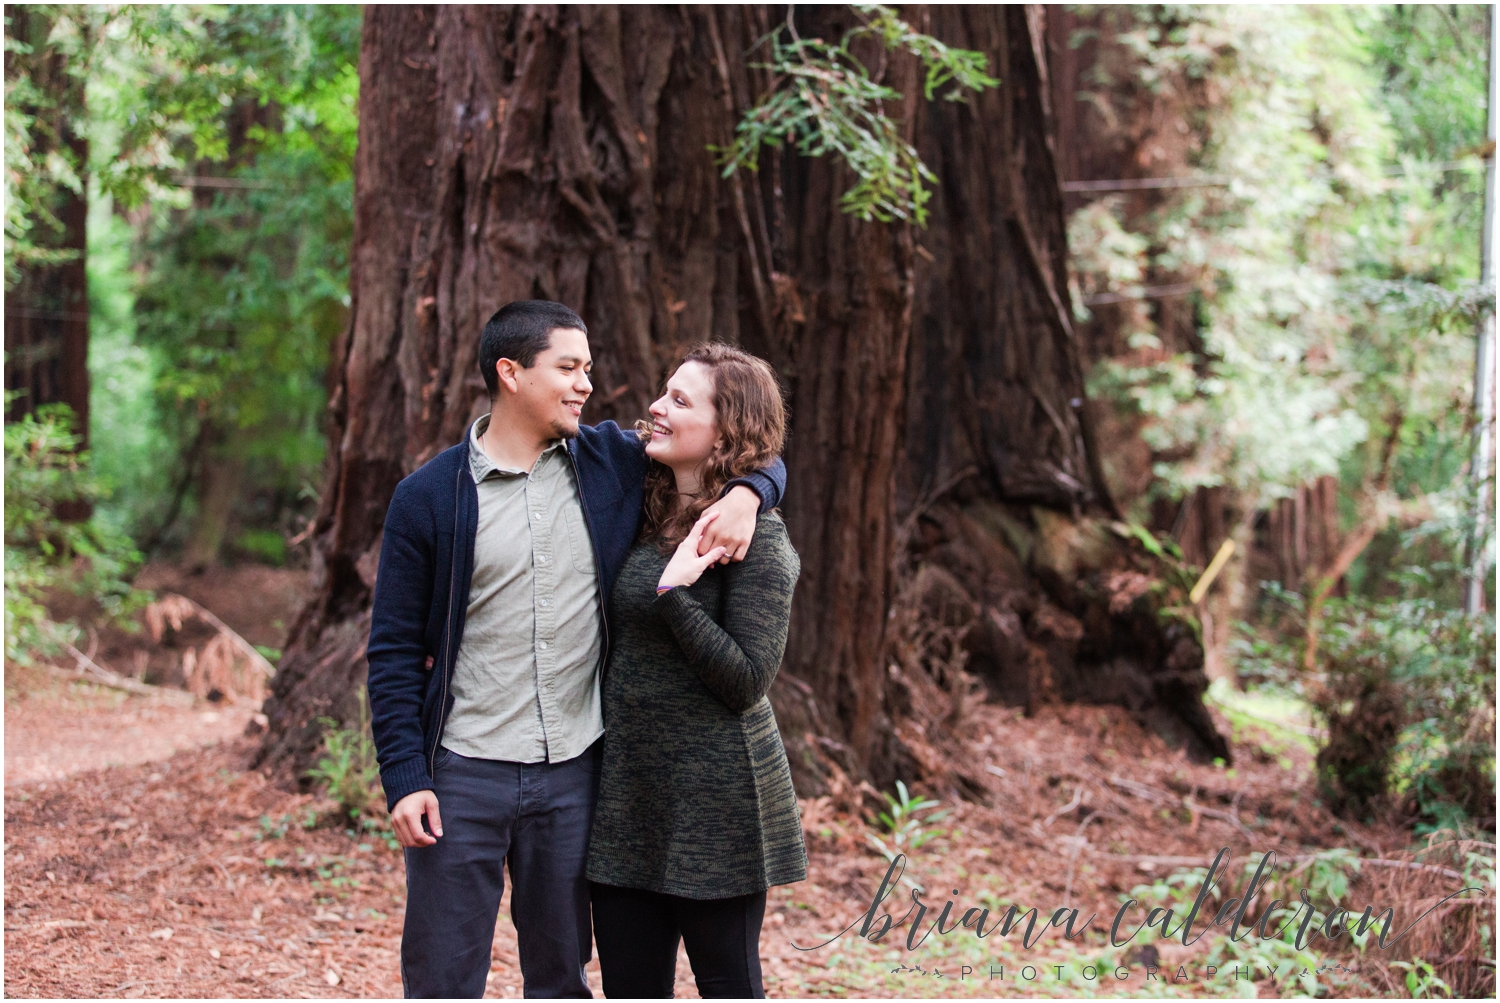 Engagement pictures at Henry Cowell Redwoods in Felton, CA by Briana Calderon Photography_1326.jpg